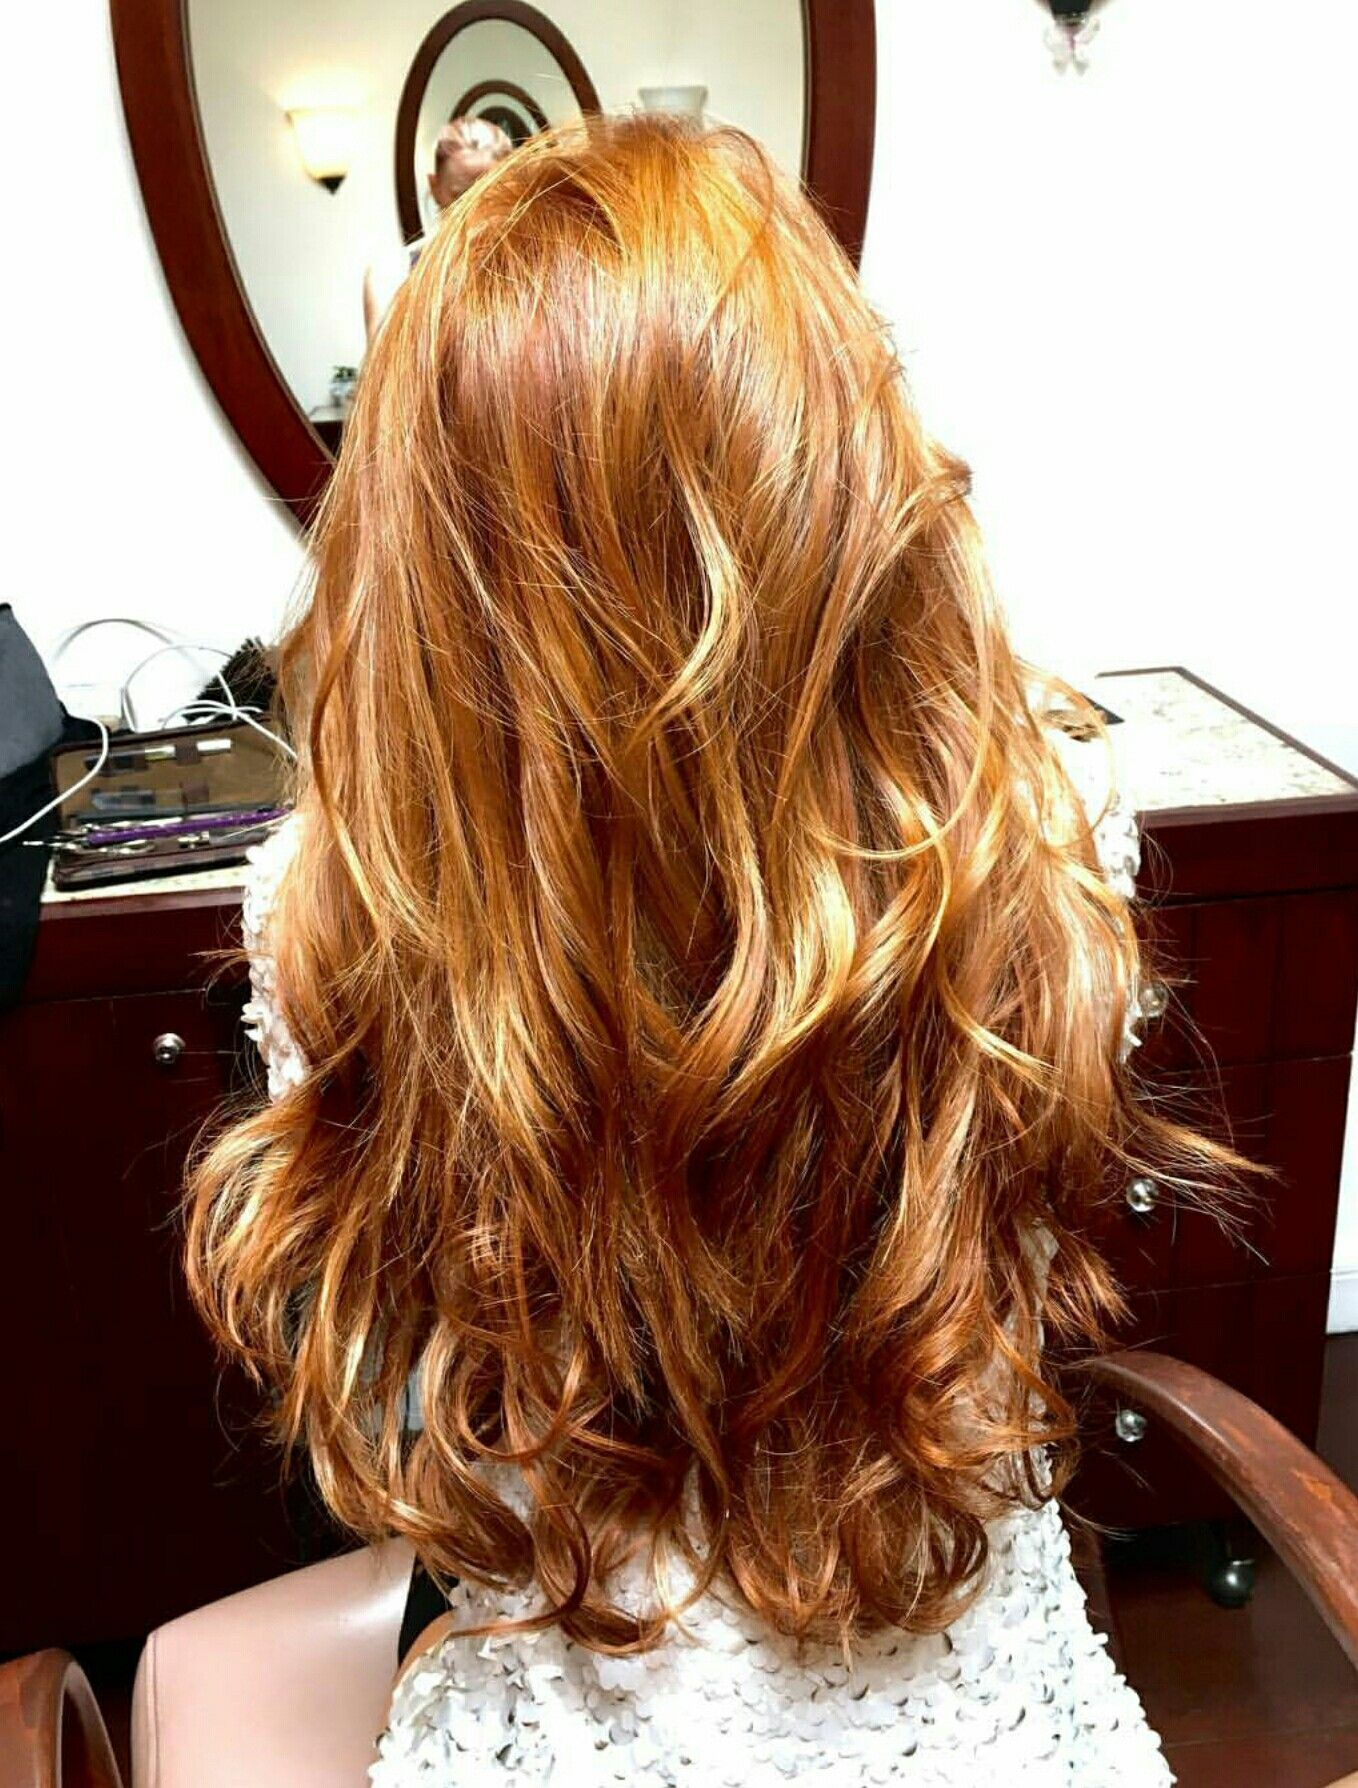 Gorgeous Natural Red Hair With Blonde Highlights Amazing Colors Red Blonde Hair Natural Red Hair Red Hair With Blonde Highlights